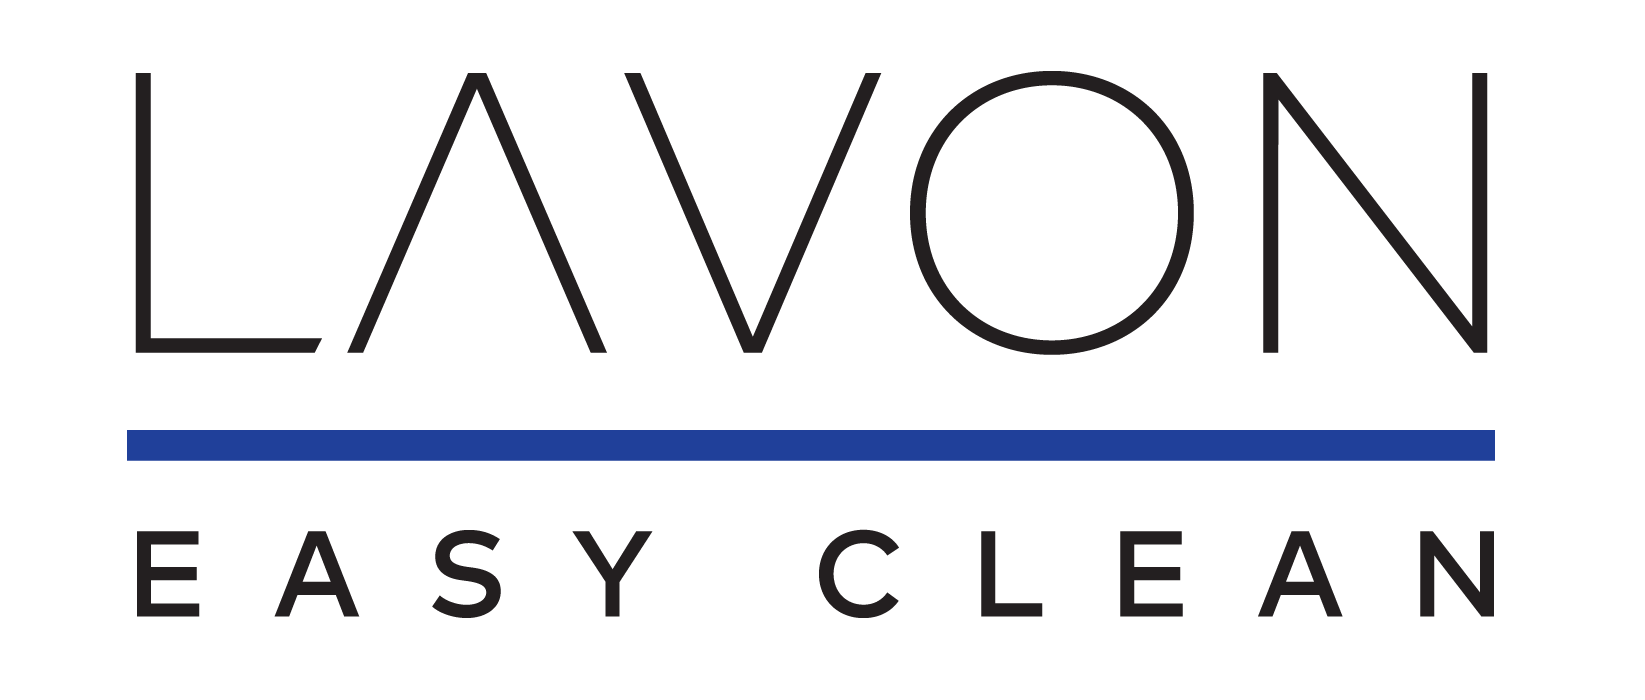 Lavon_Easy_Clean-logo-color.png, 28kB